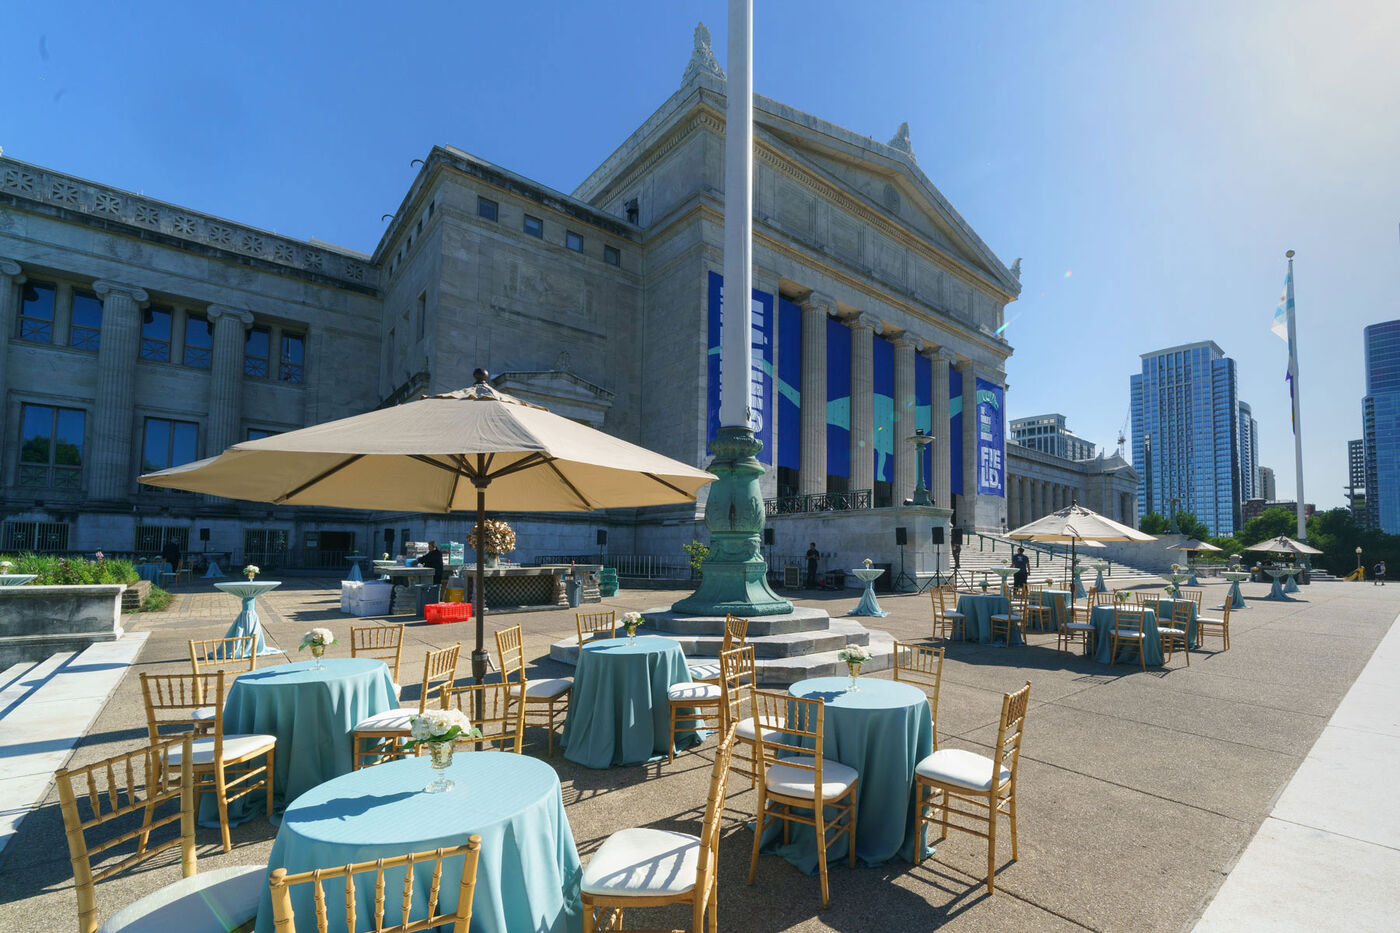 Tables and chairs set up outside the north entrance of the Field Museum on a sunny day.